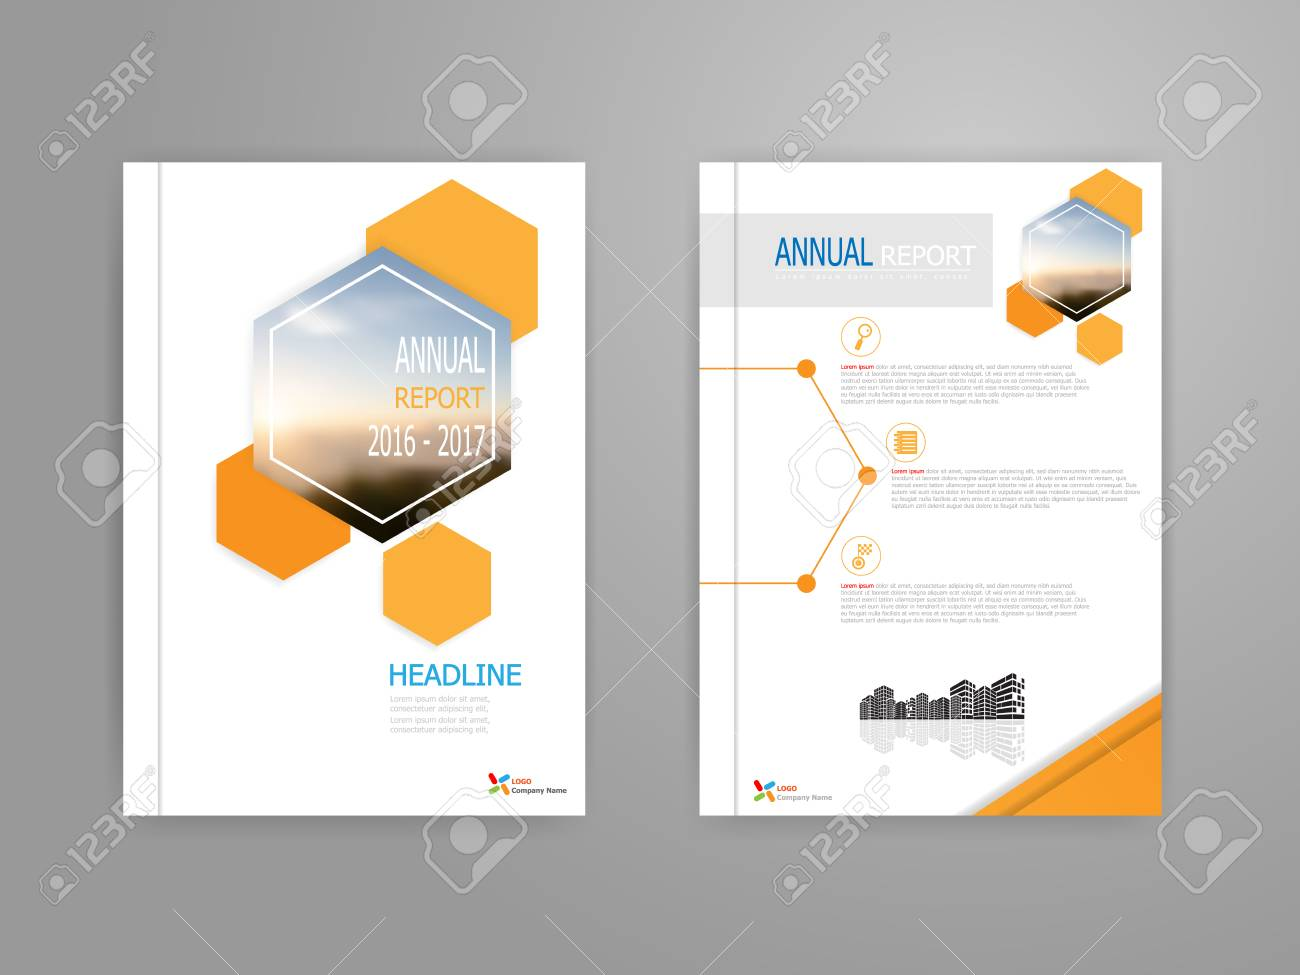 advertise template advertise template Idealvistalistco